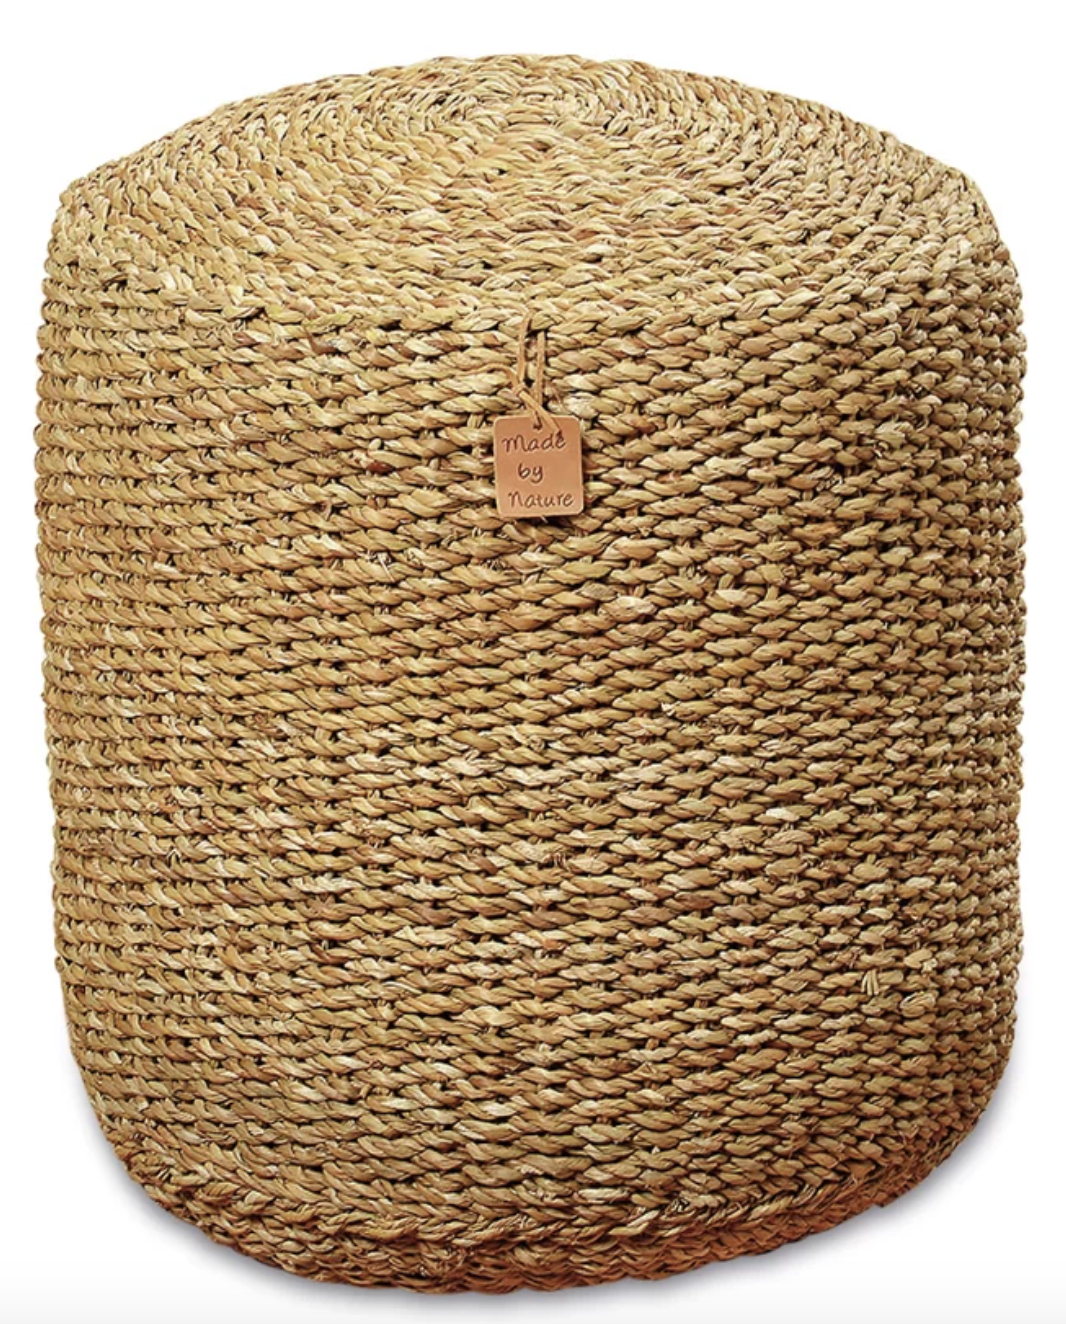 rosecliff-heights-lopez-woven-wicker-ottoman